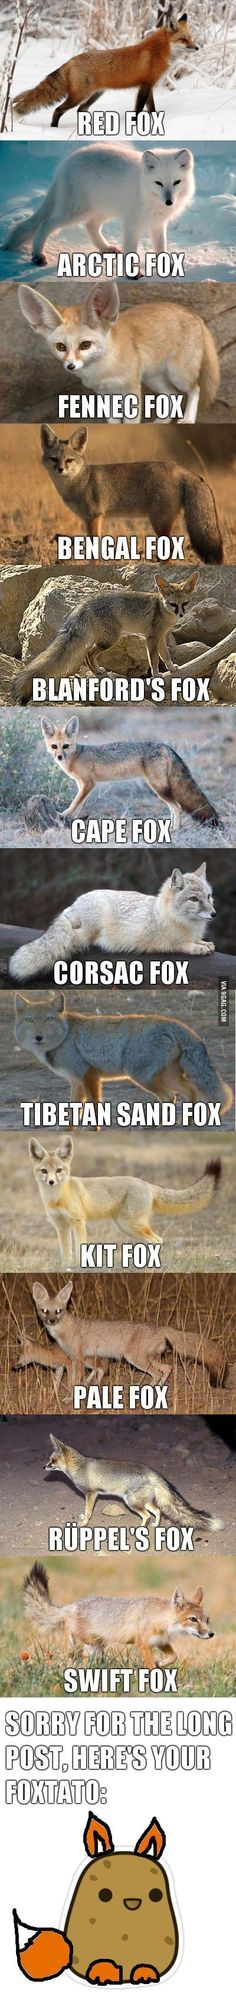 Different Types of Foxes in The World